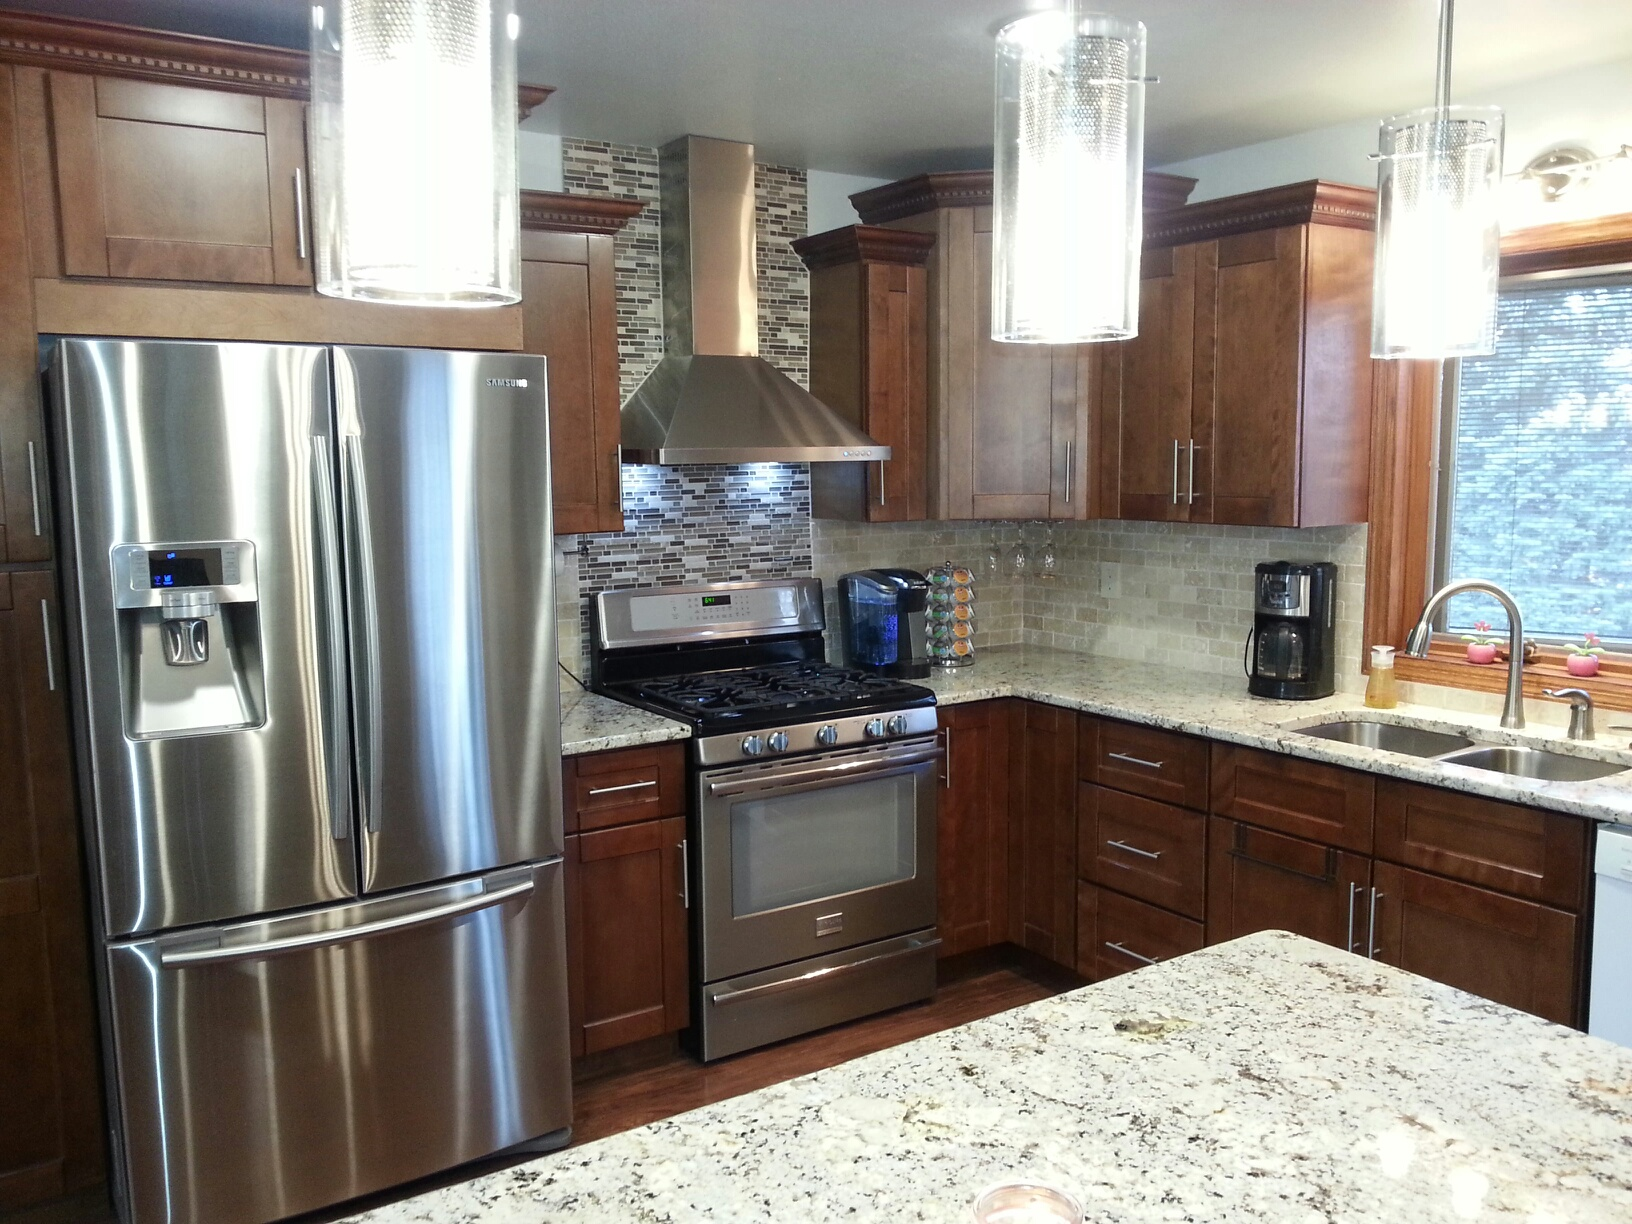 sienna shaker kitchen makeover a kitchen remodel for under 10 000 rta kitchen cabinets